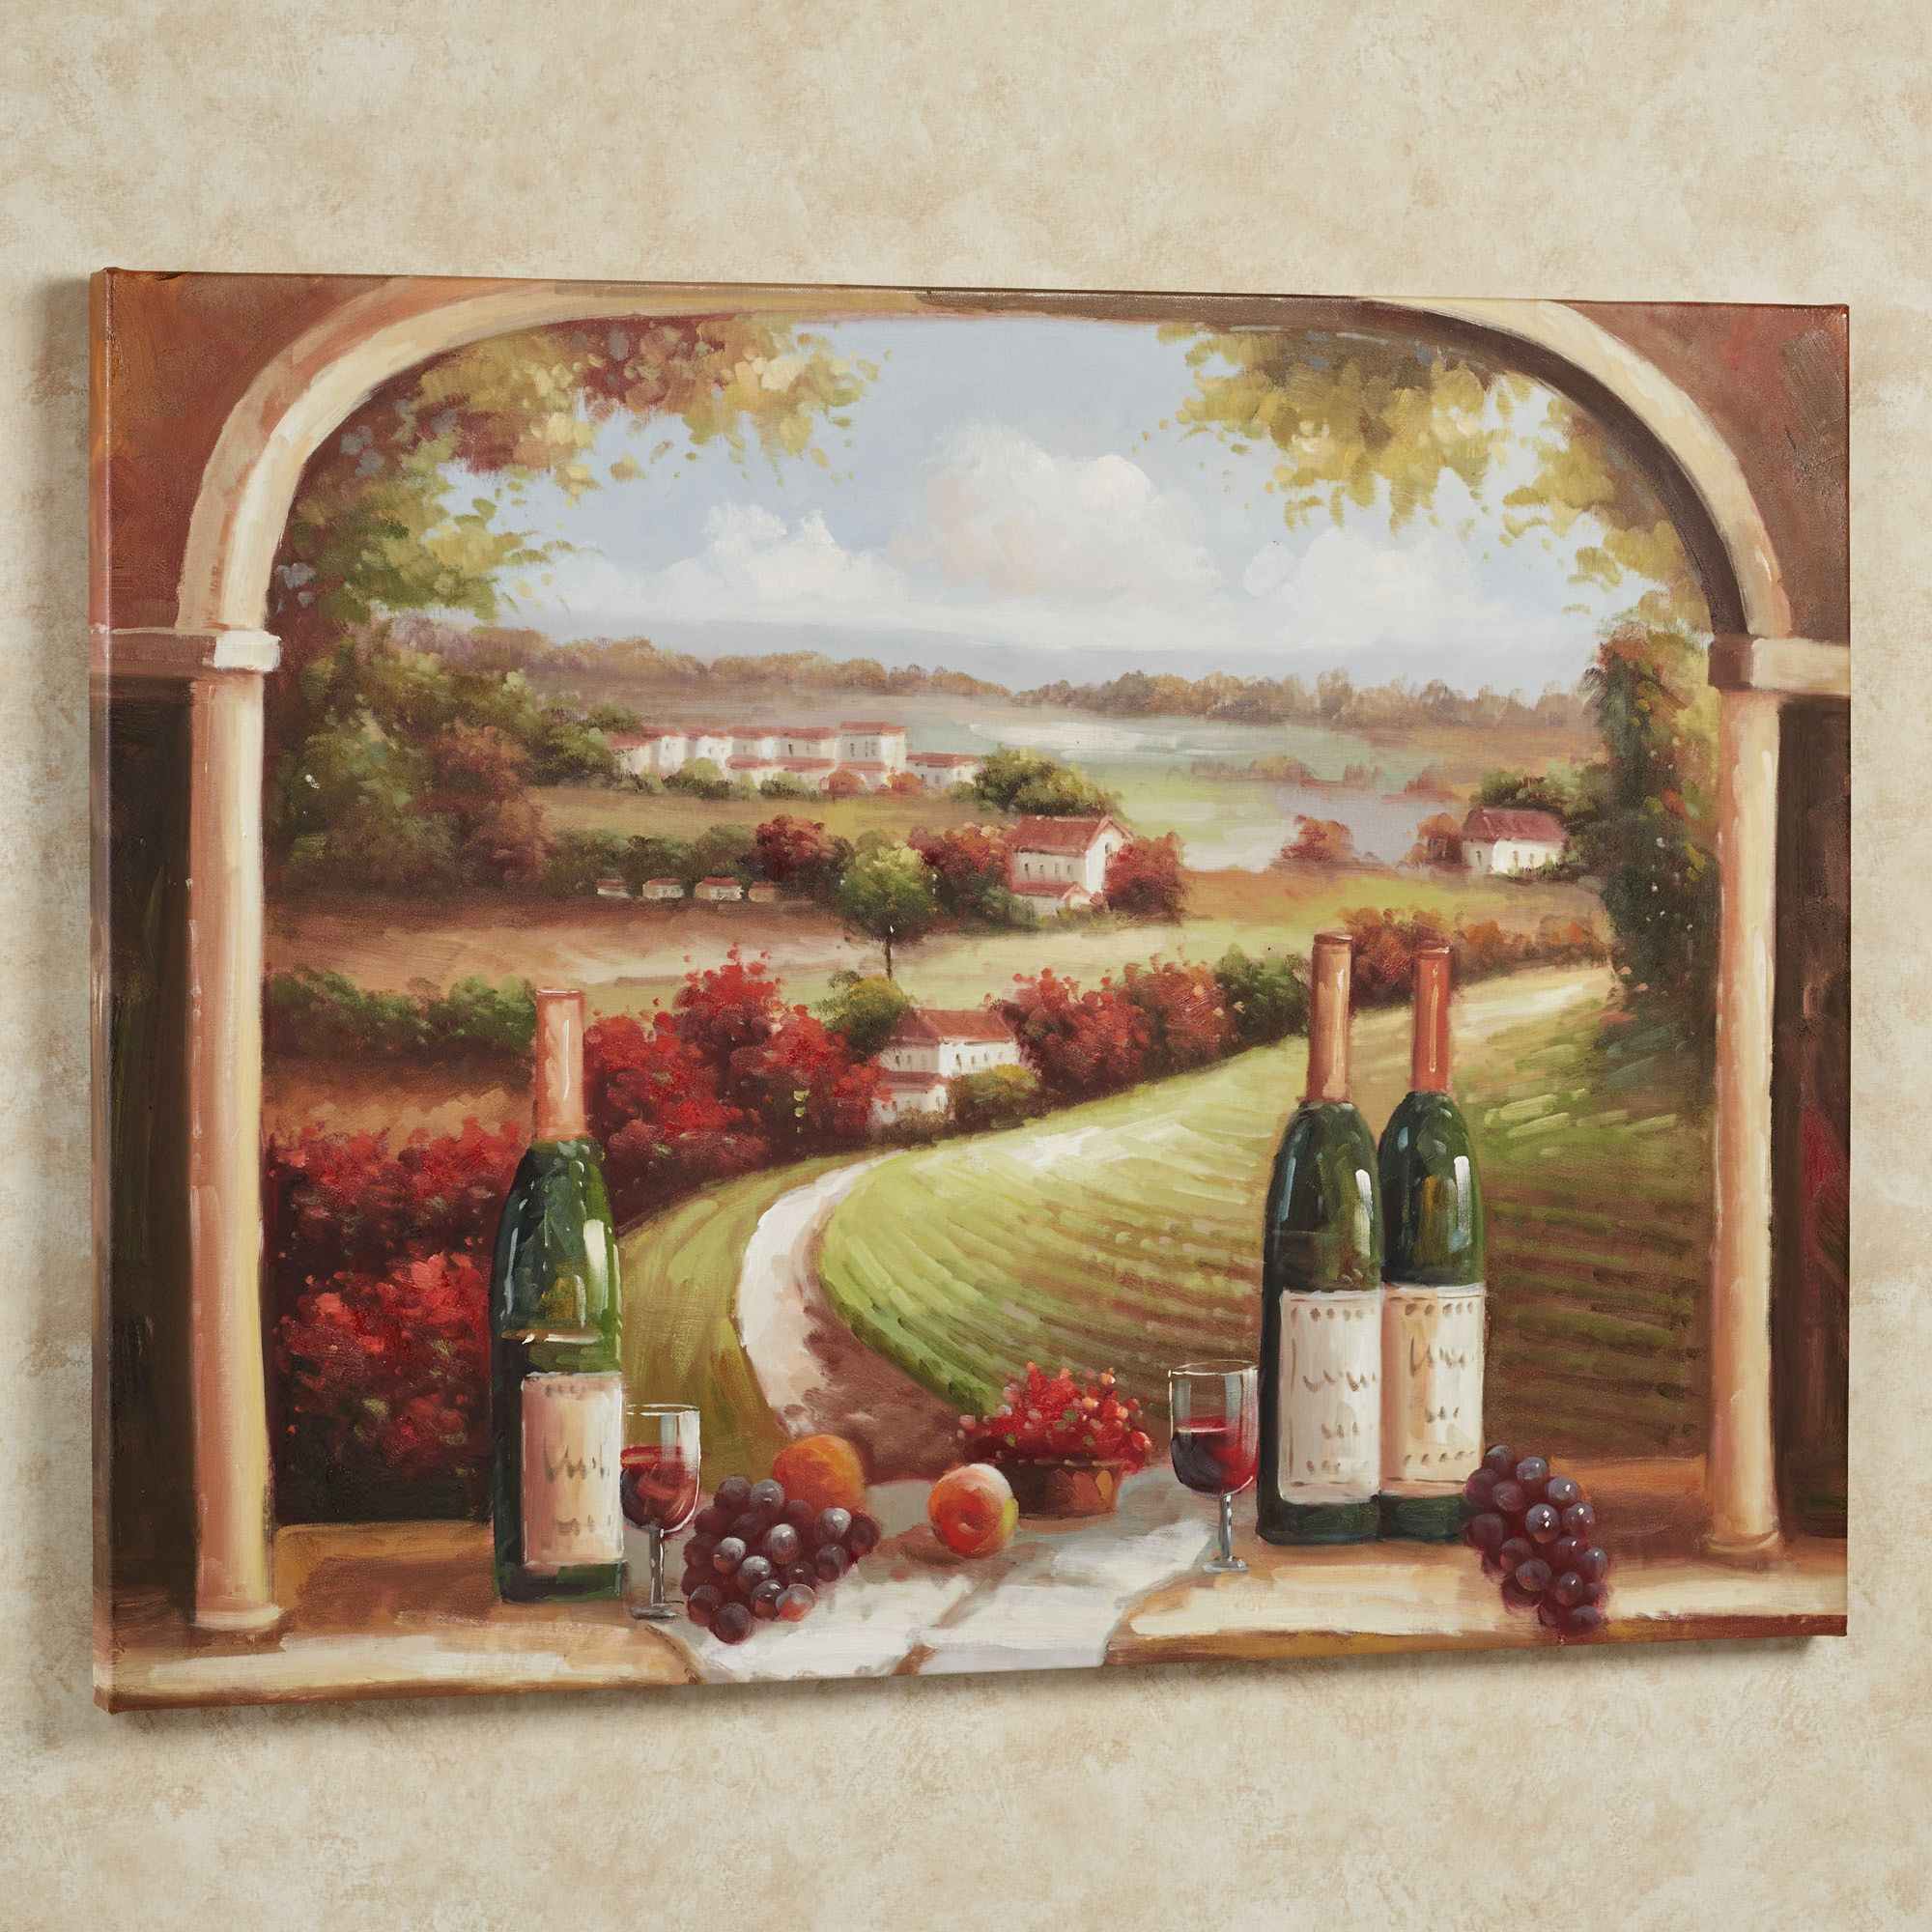 Picnic in sonoma canvas wall art for Wine and dine wall art